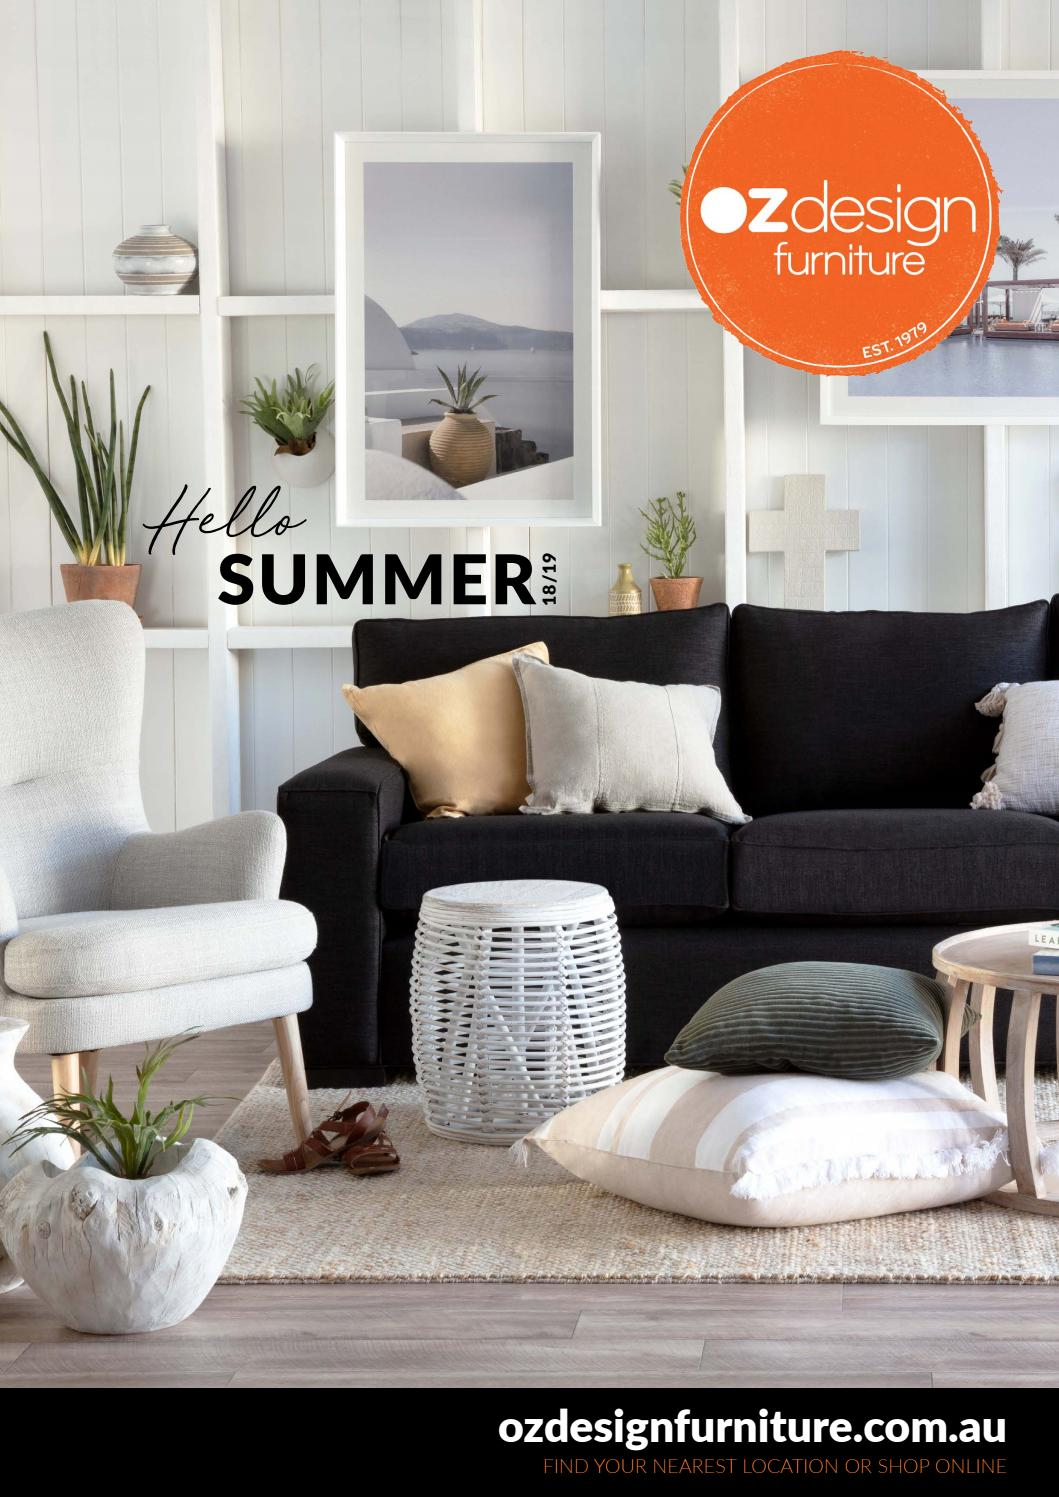 Hello Summer 18 19 Oz Design Furniture By